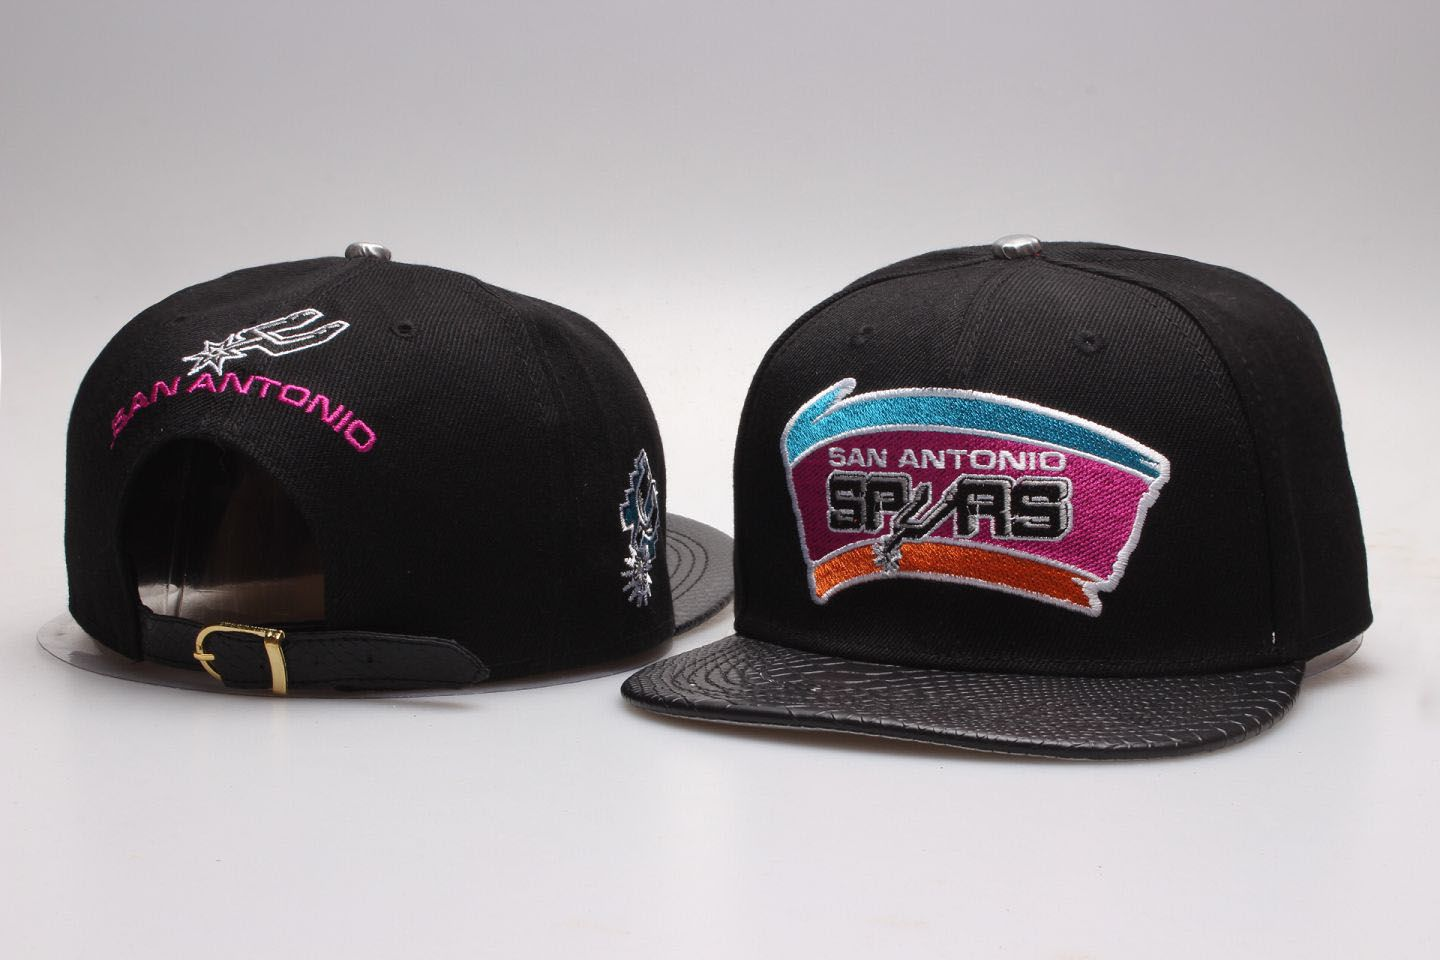 NBA San Antonio Spurs Snapback hat 201811251